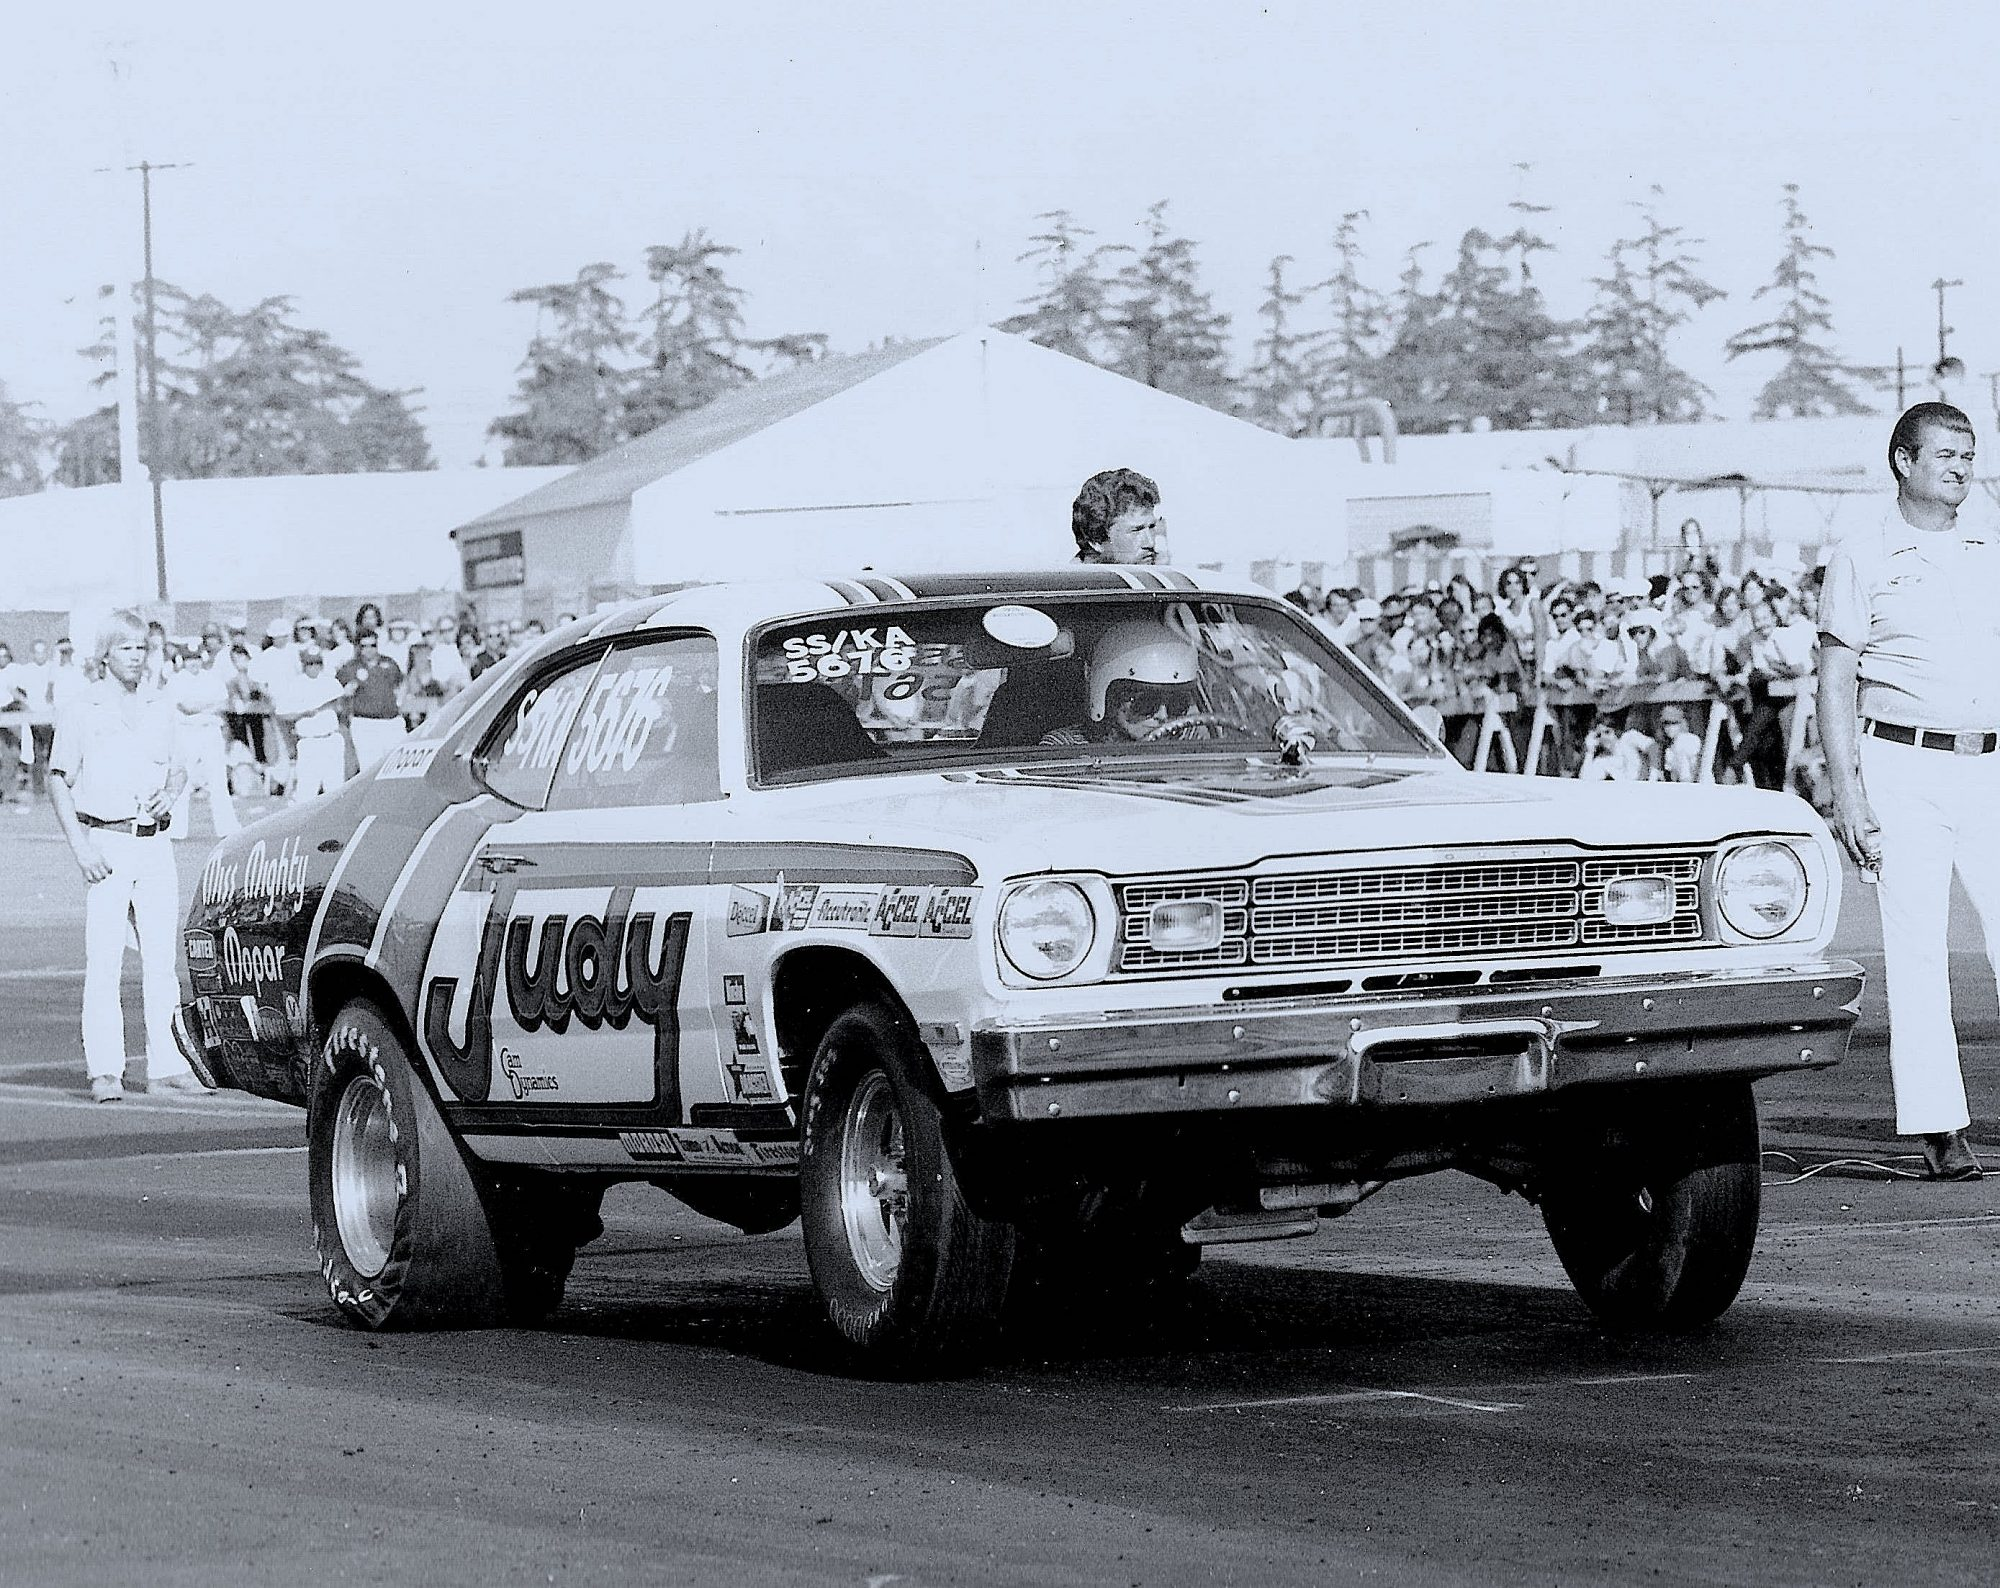 Judy Lilly drag racing